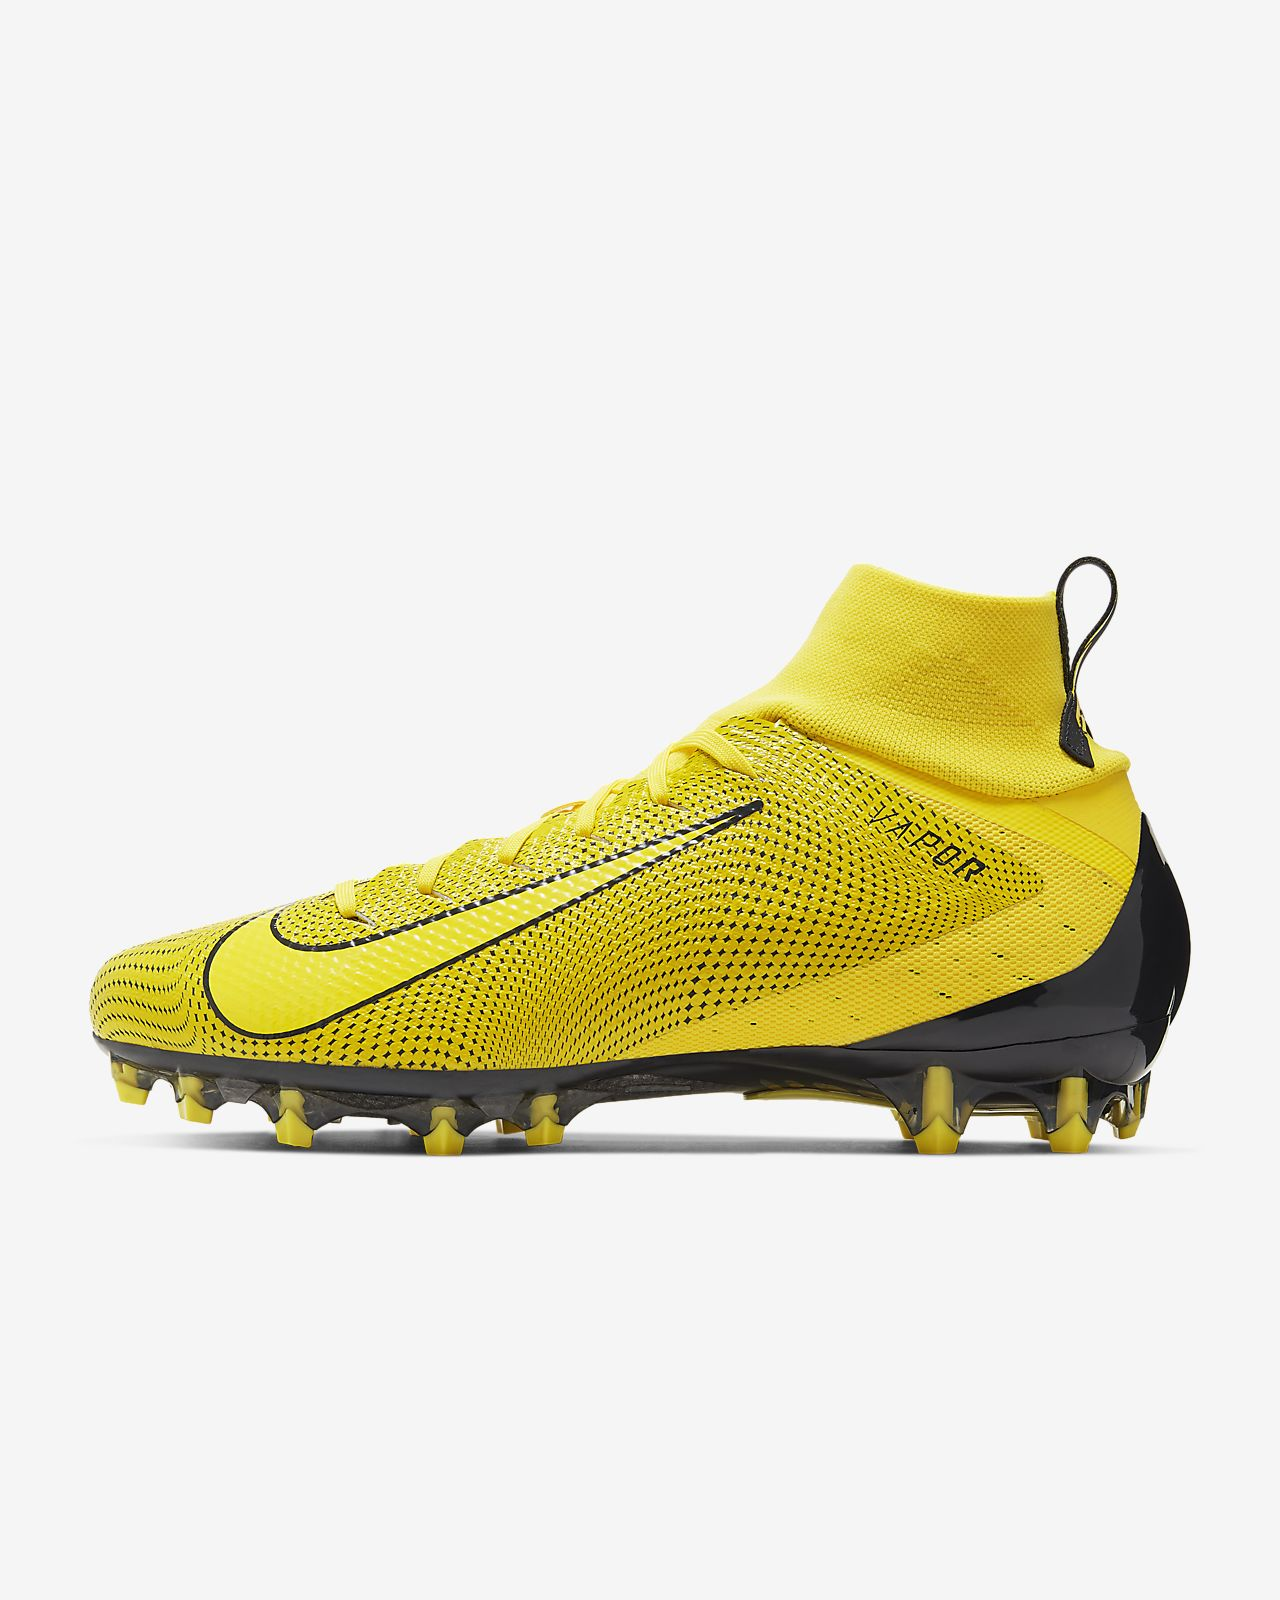 e959685c4 Nike Vapor Untouchable 3 Pro Football Cleat. Nike.com